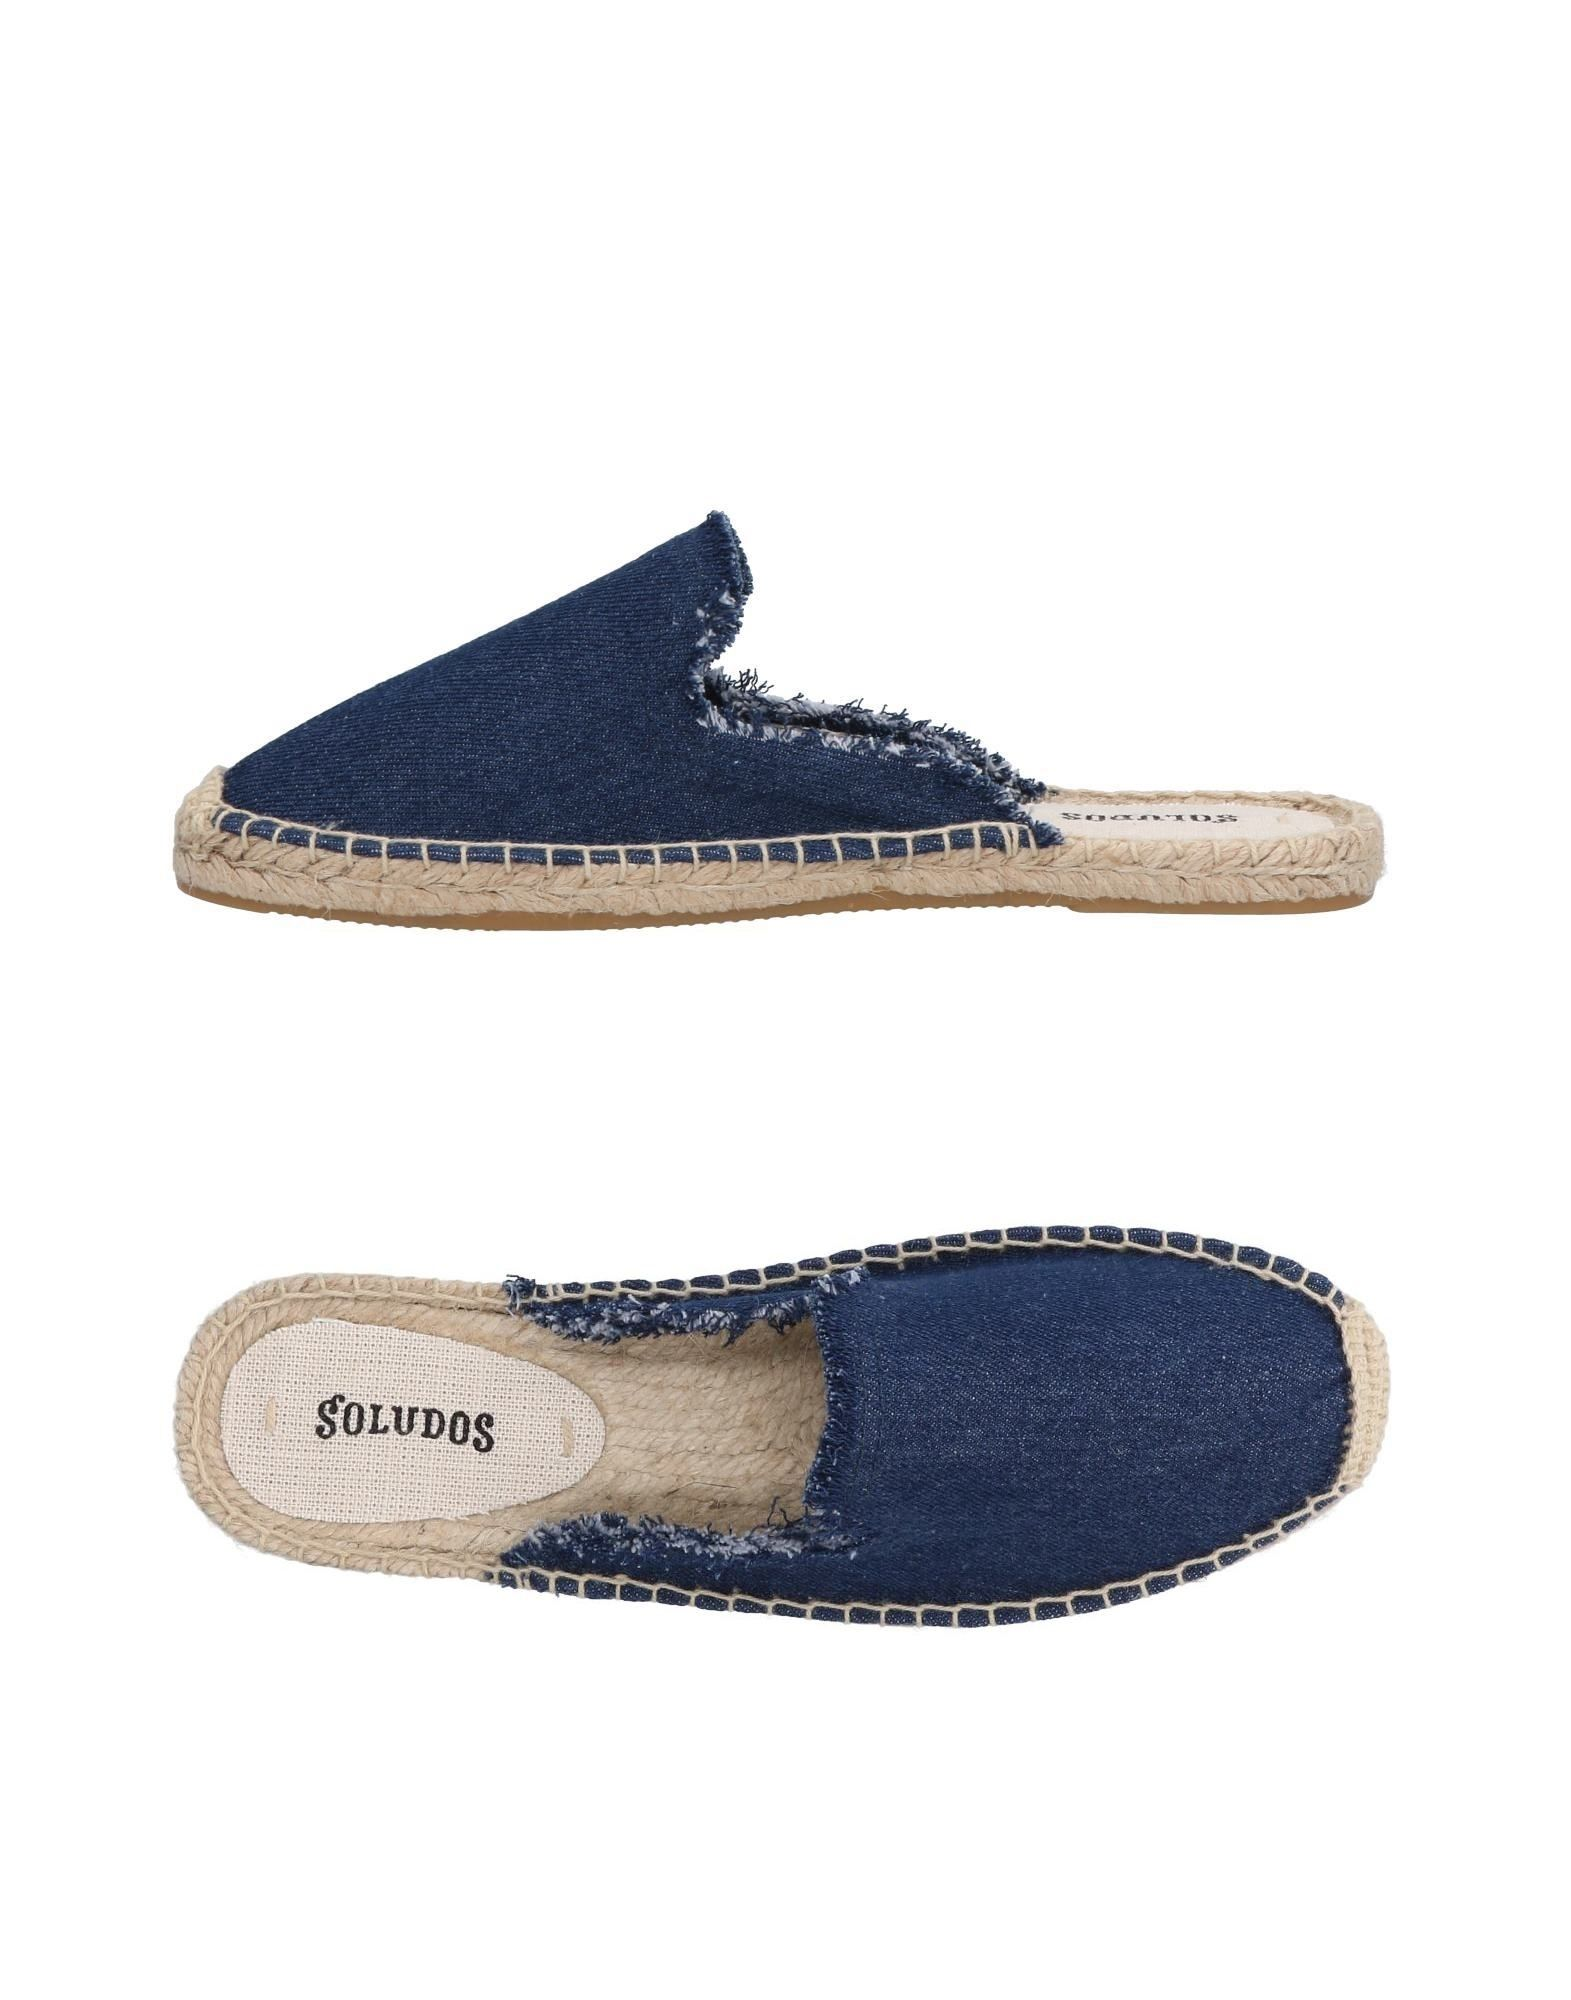 soludos bout ouvert mules mules - femmes soludos bout ouvert 11472439dr mules ouvert en ligne le royaume - uni - bbe651